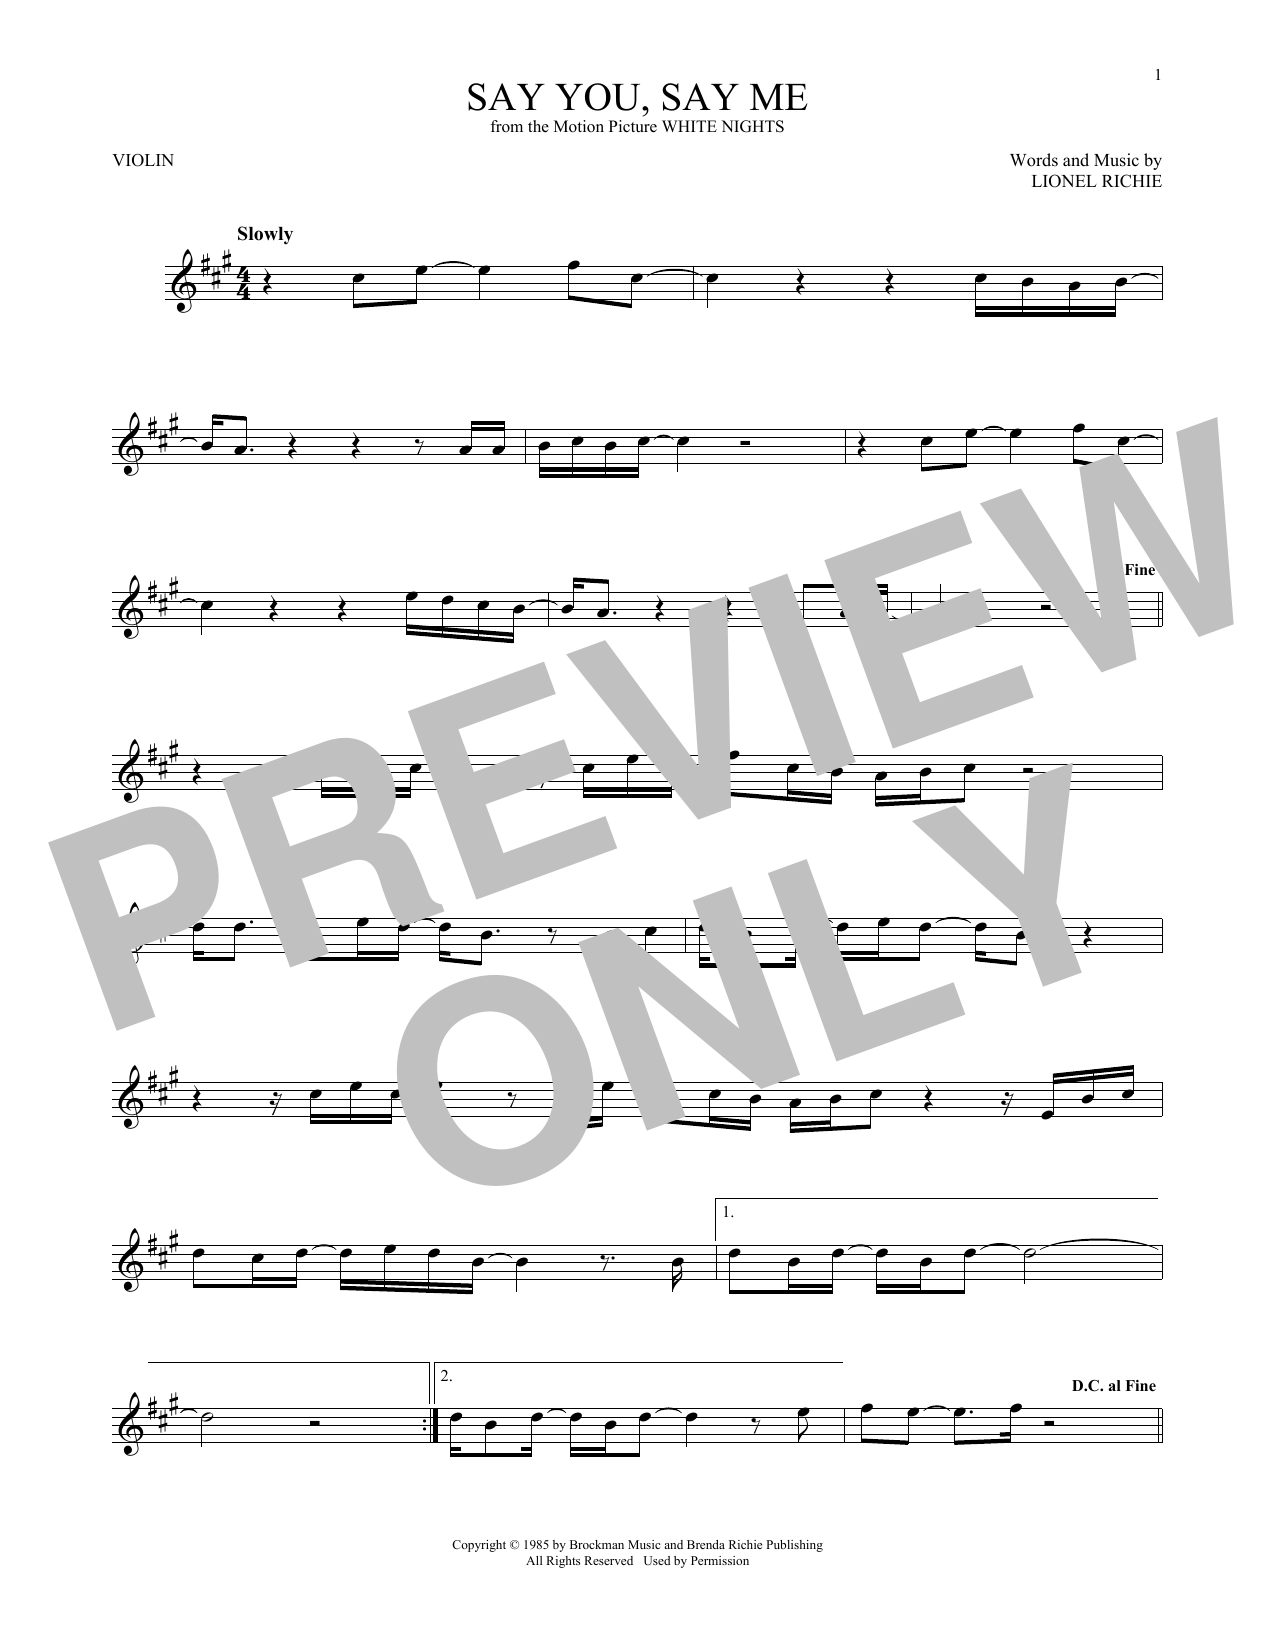 Truly lionel richie sheet music